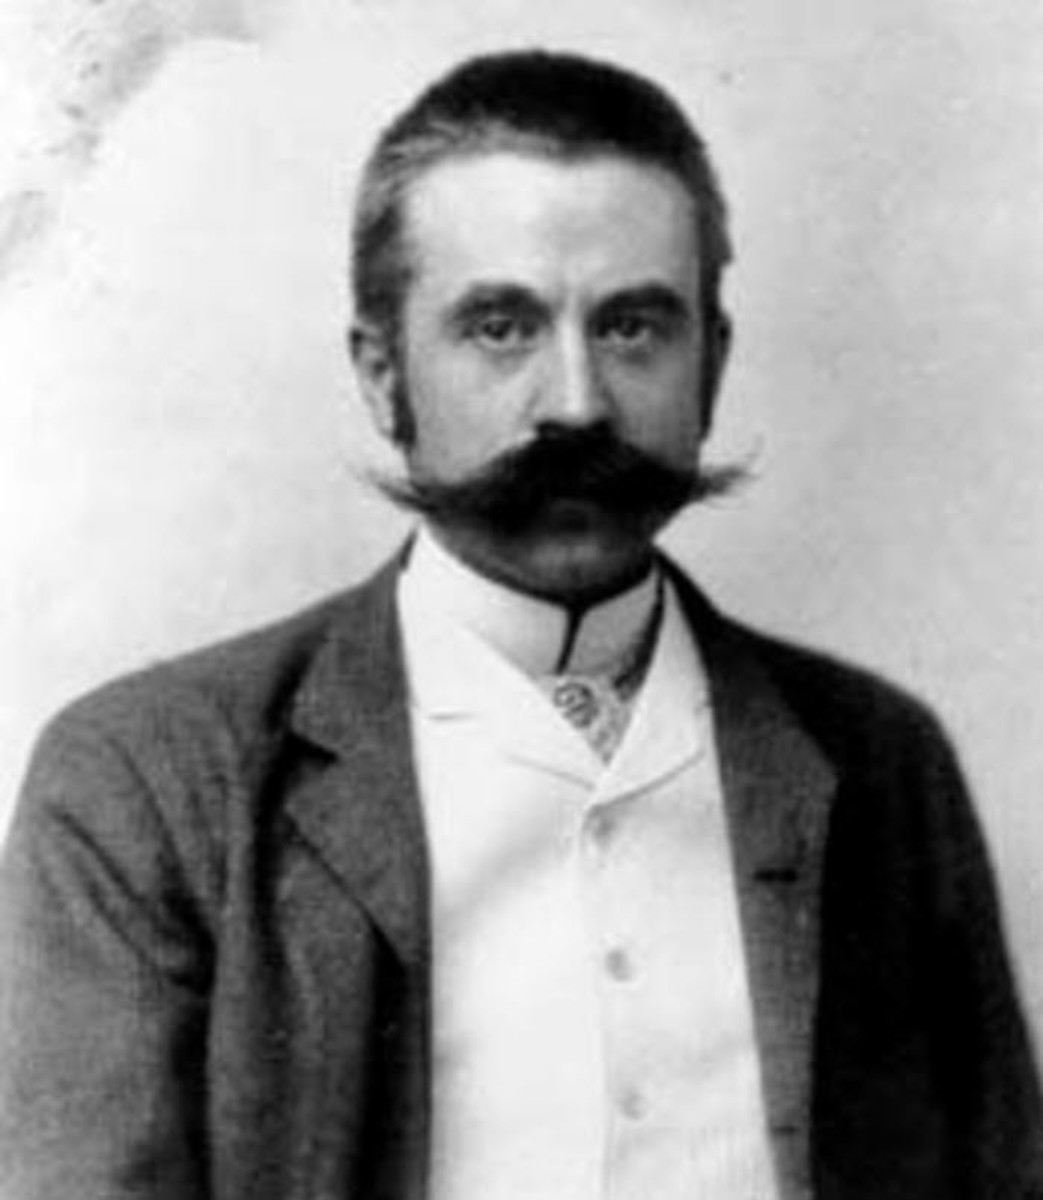 Stanford White, the Man Who Wold be Evelyn's Downfall